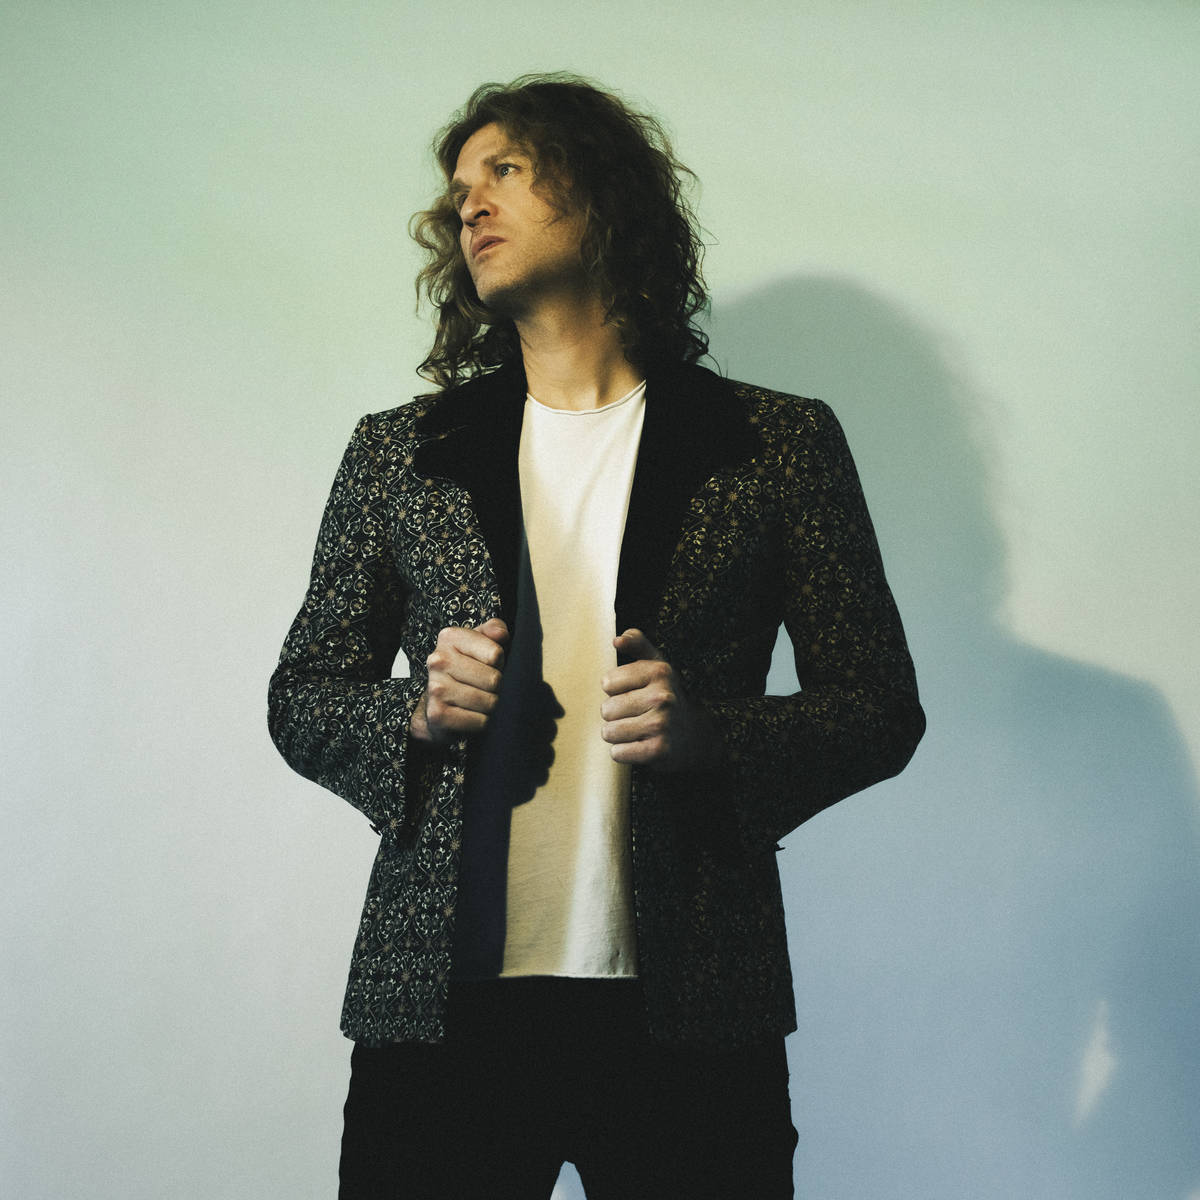 Dave Keuning once again recorded his latest solo album in his home studio. (Dana Trippe)